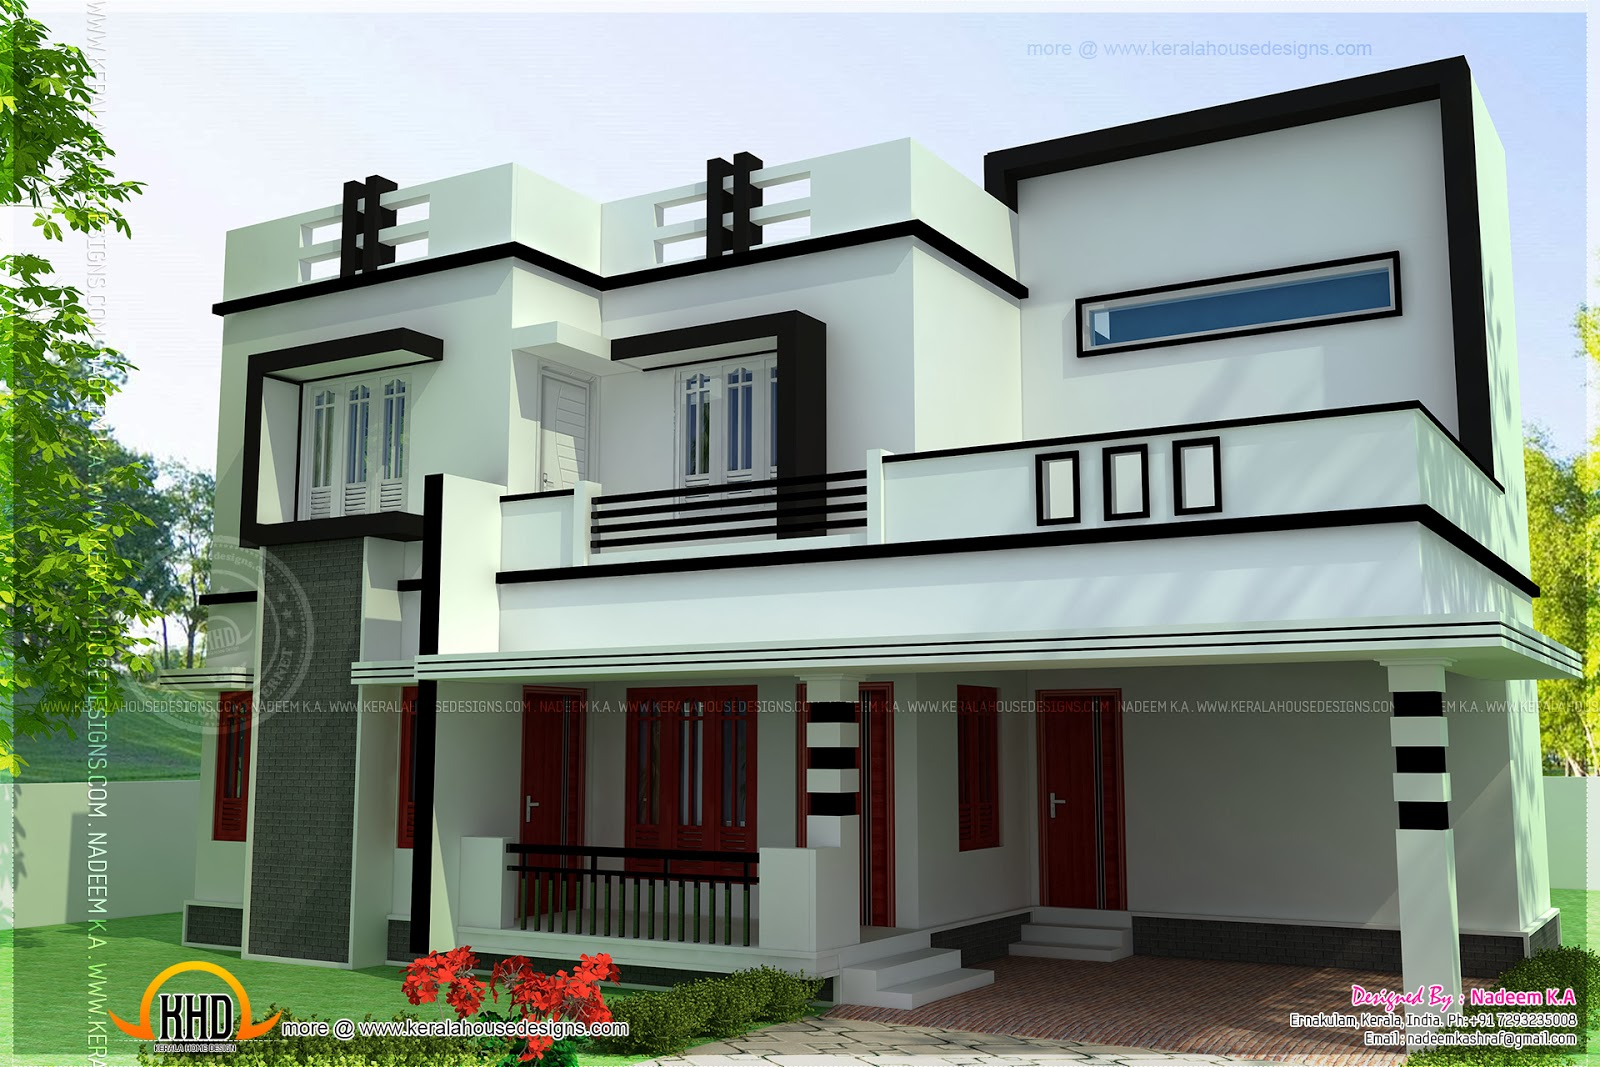 Flat roof 4 bedroom modern house kerala home design and for Four bedroom flat